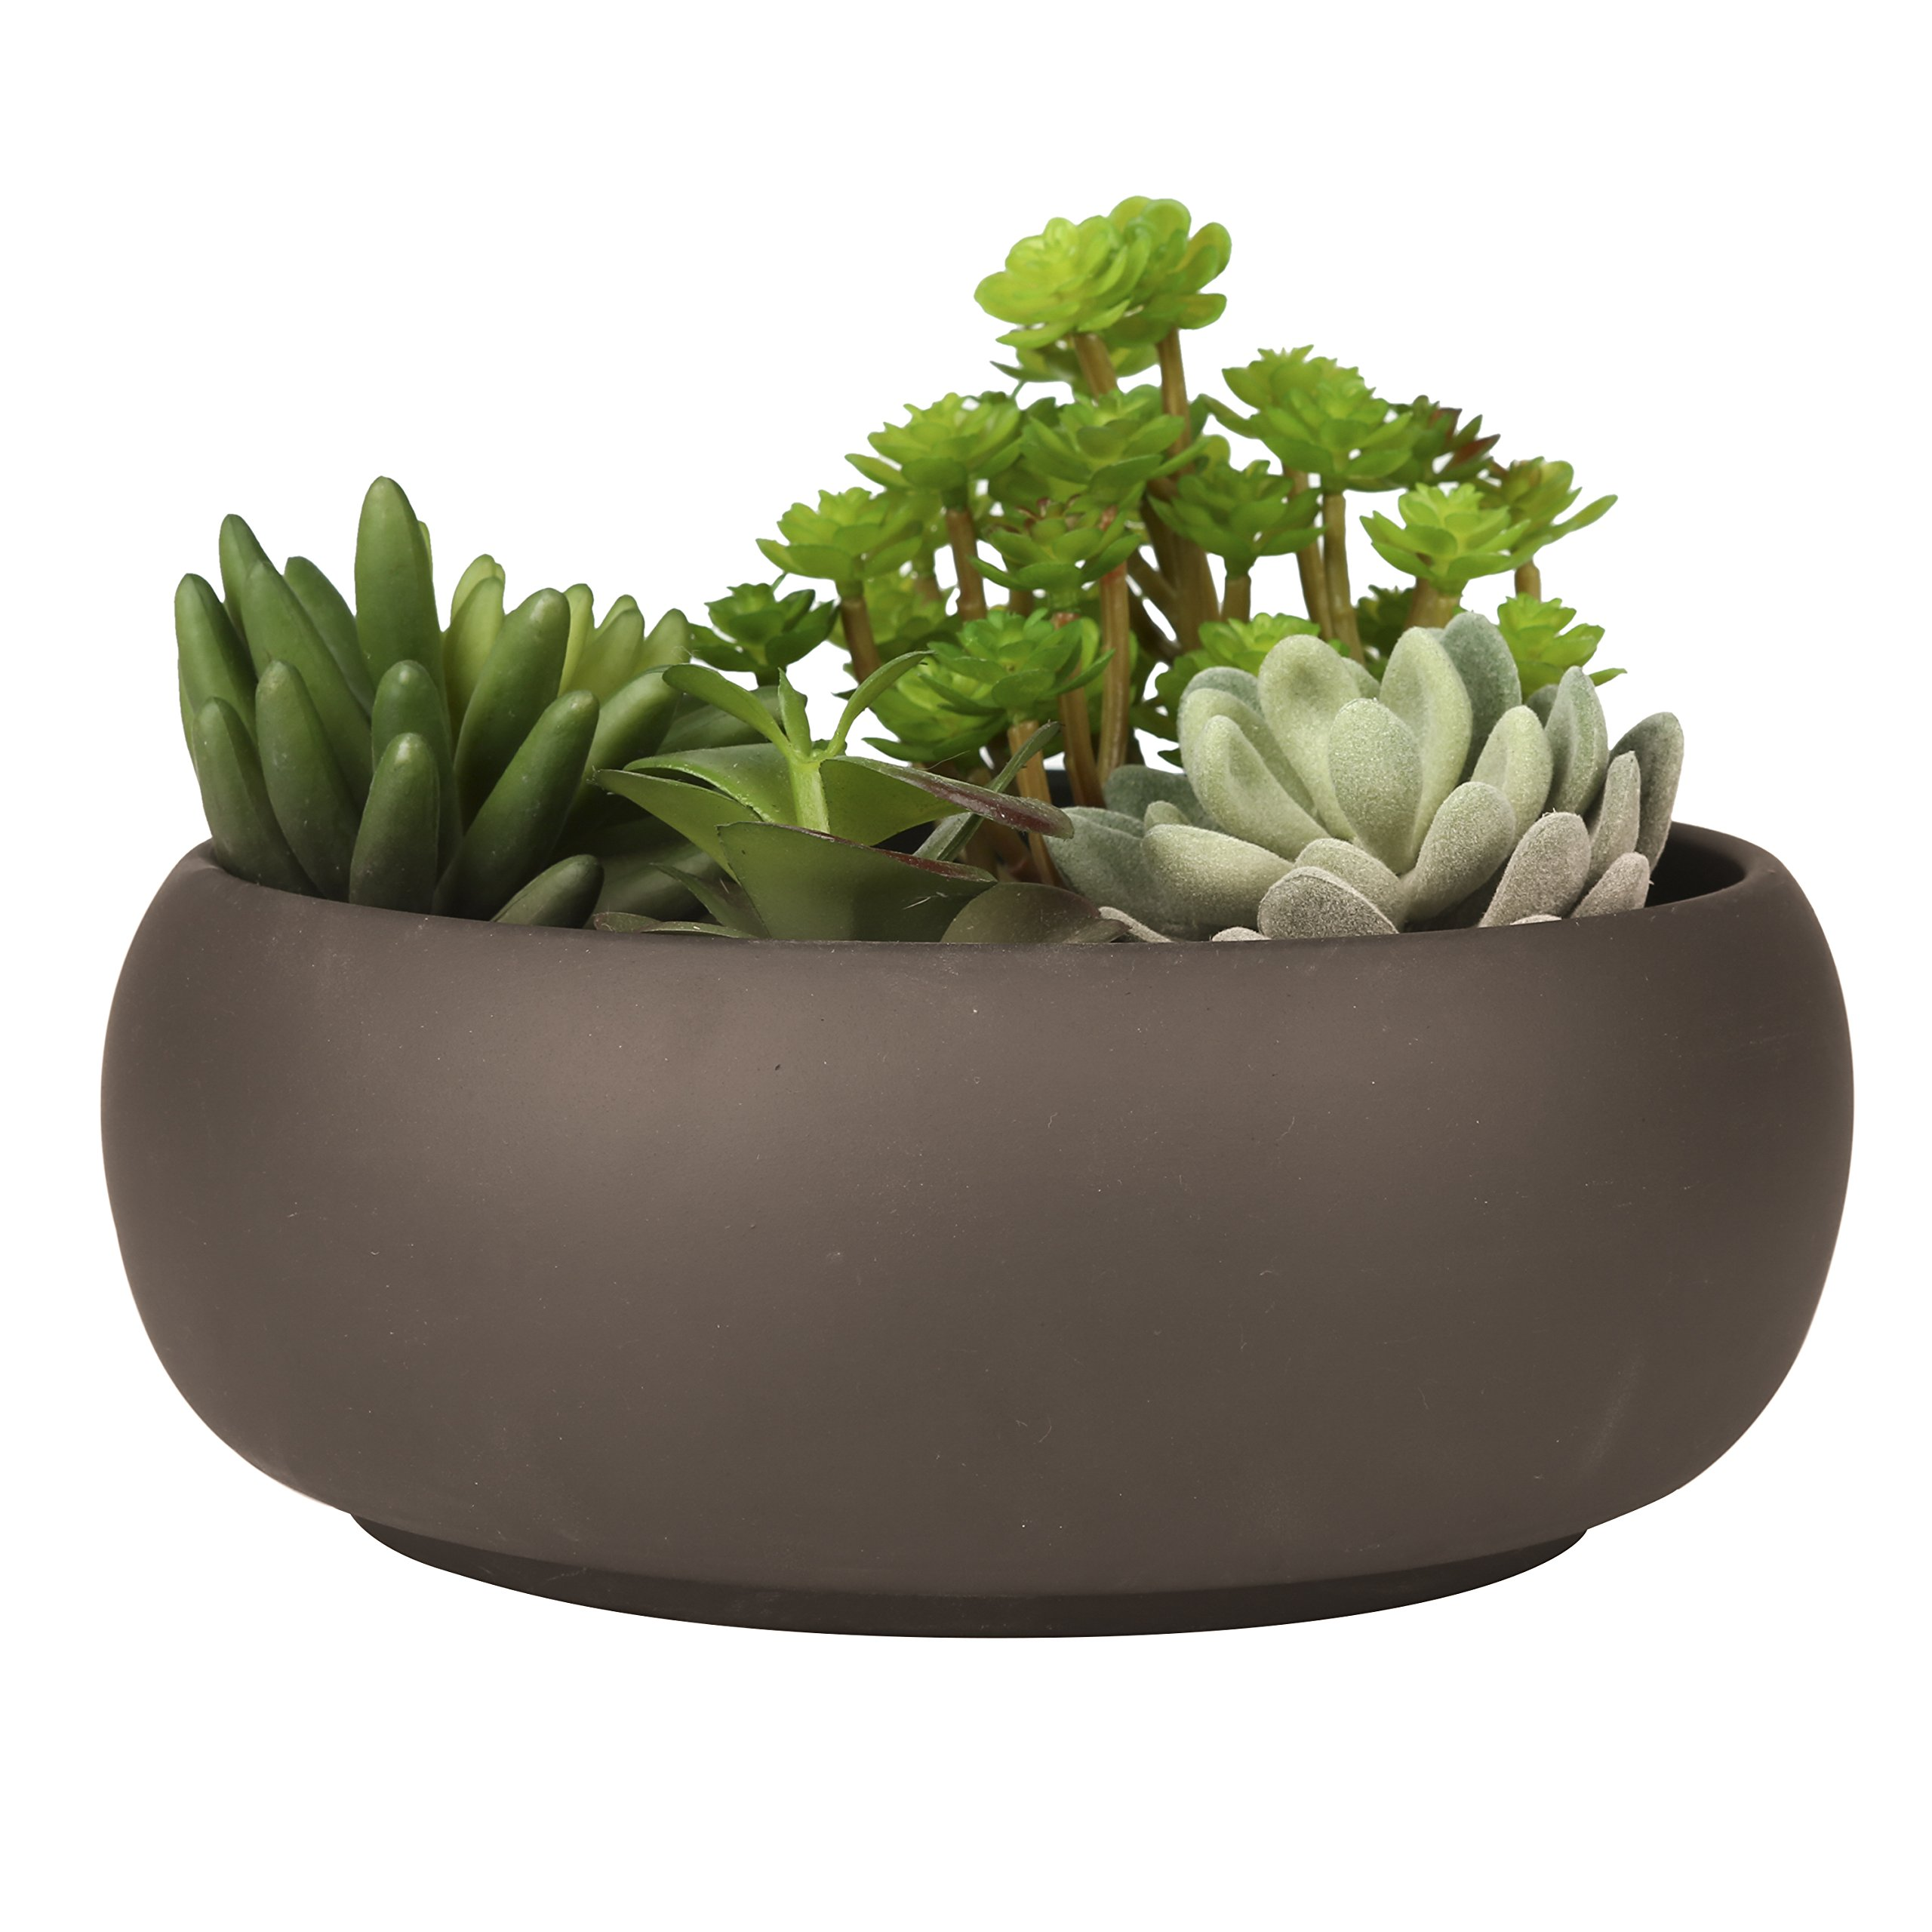 Modern Unglazed Round Ceramic Succulent Cactus Planter Pot with Brown Matte Finish by MyGift